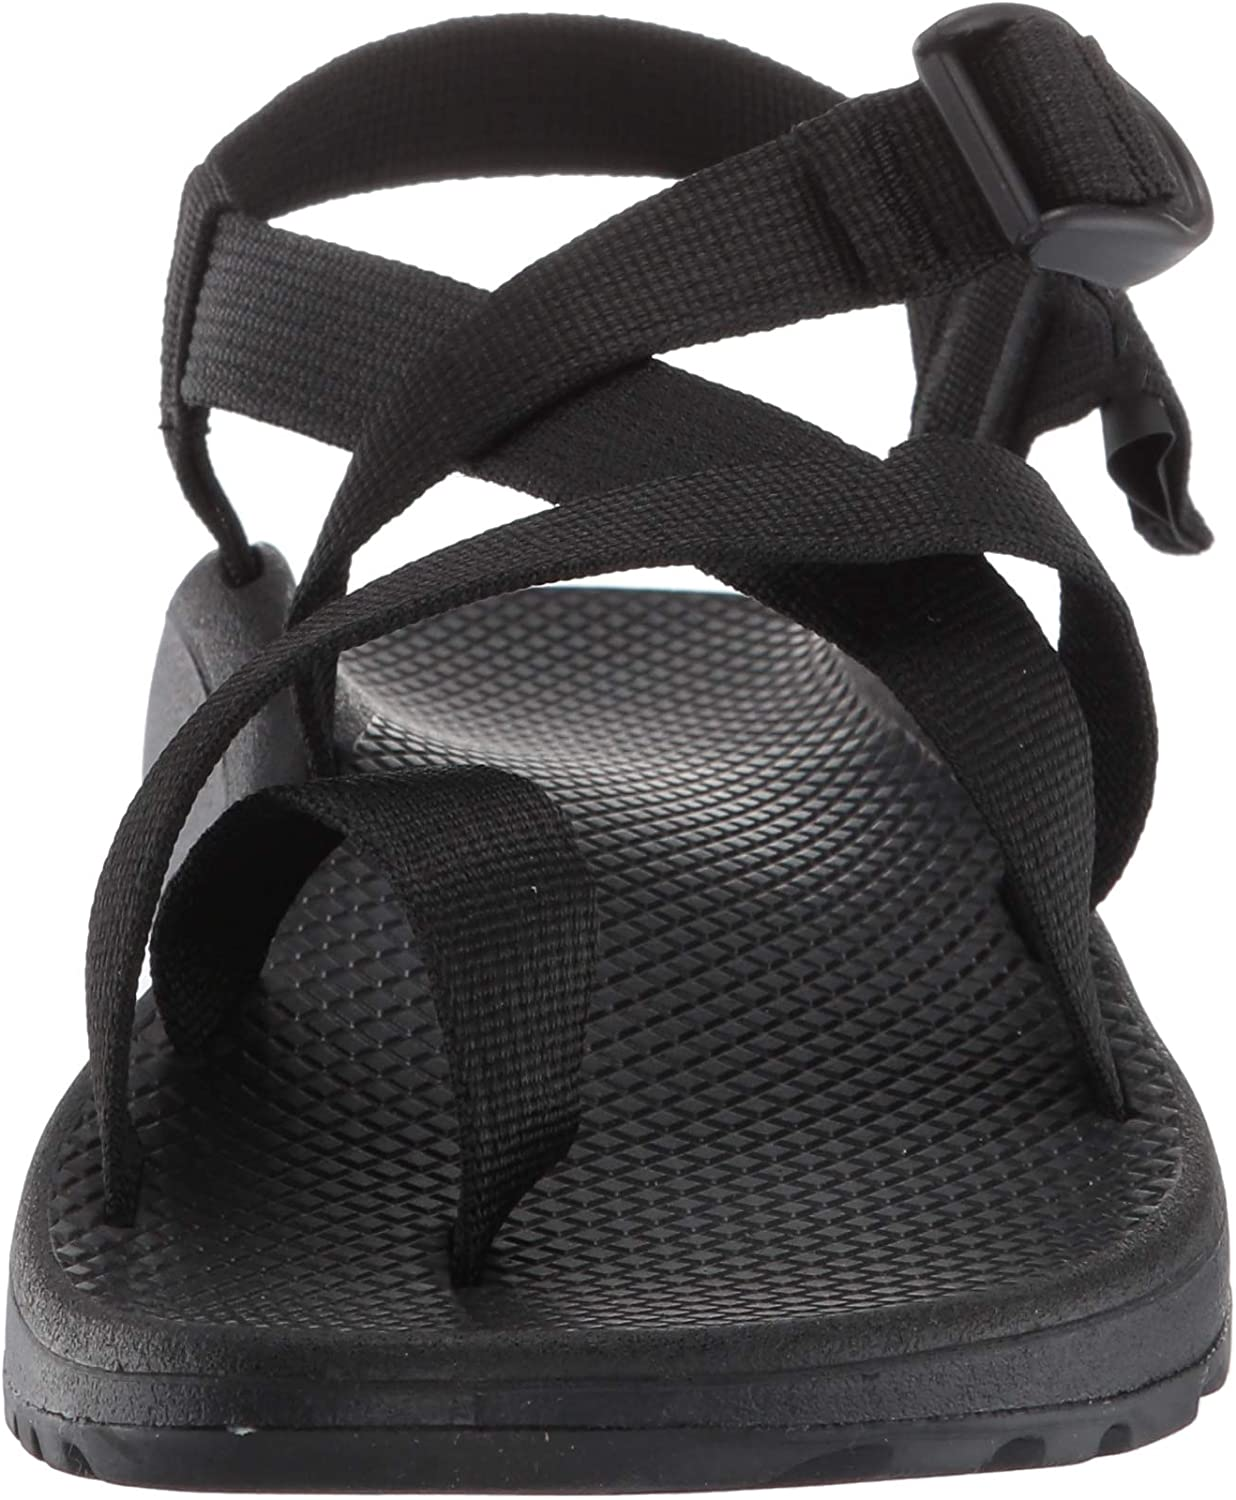 Chaco Women's ZX2 Classic Athletic Solid Black